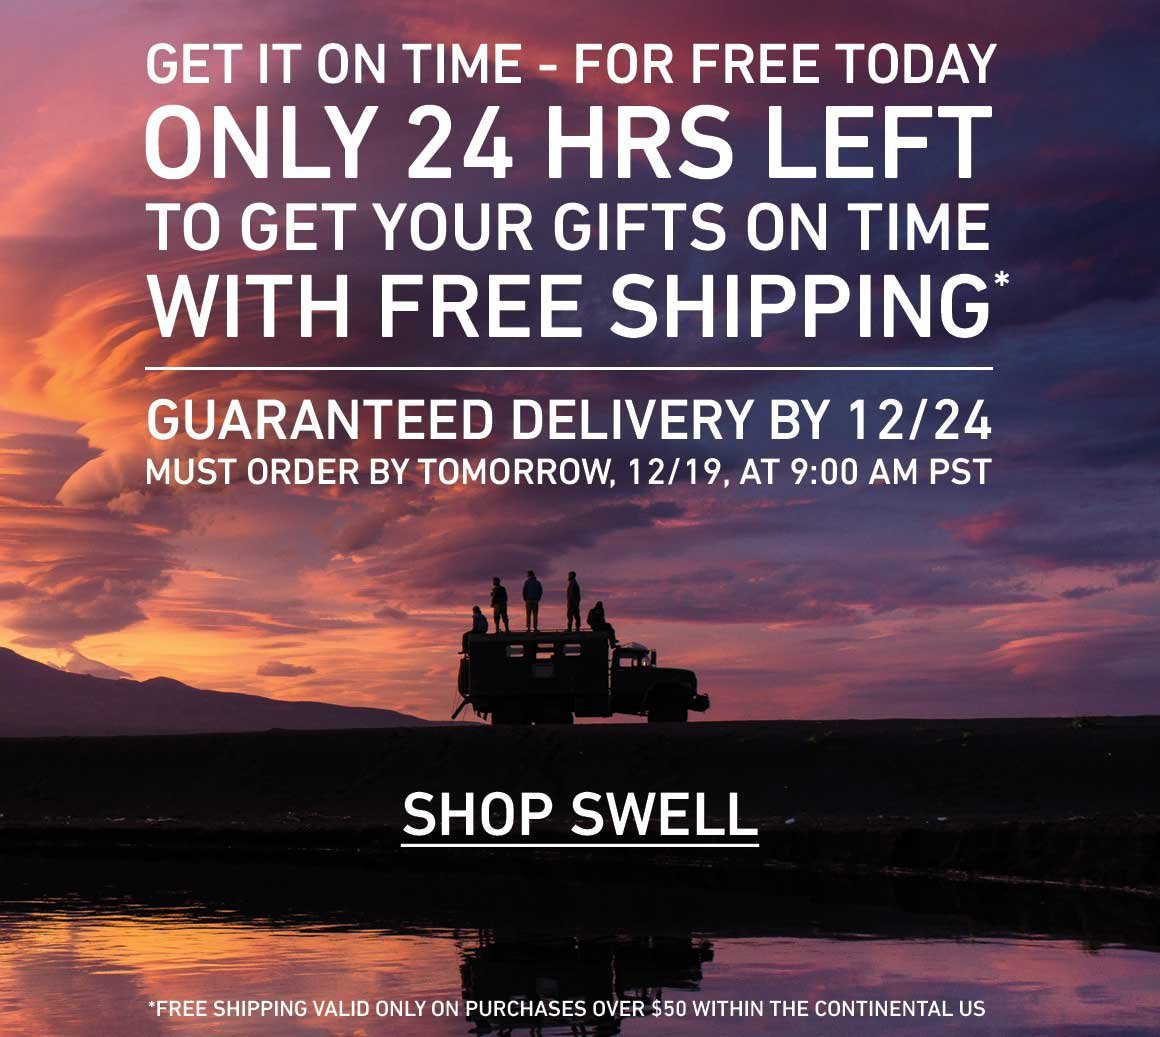 Last Day for Free Shipping With Guaranteed 12/24 Delivery